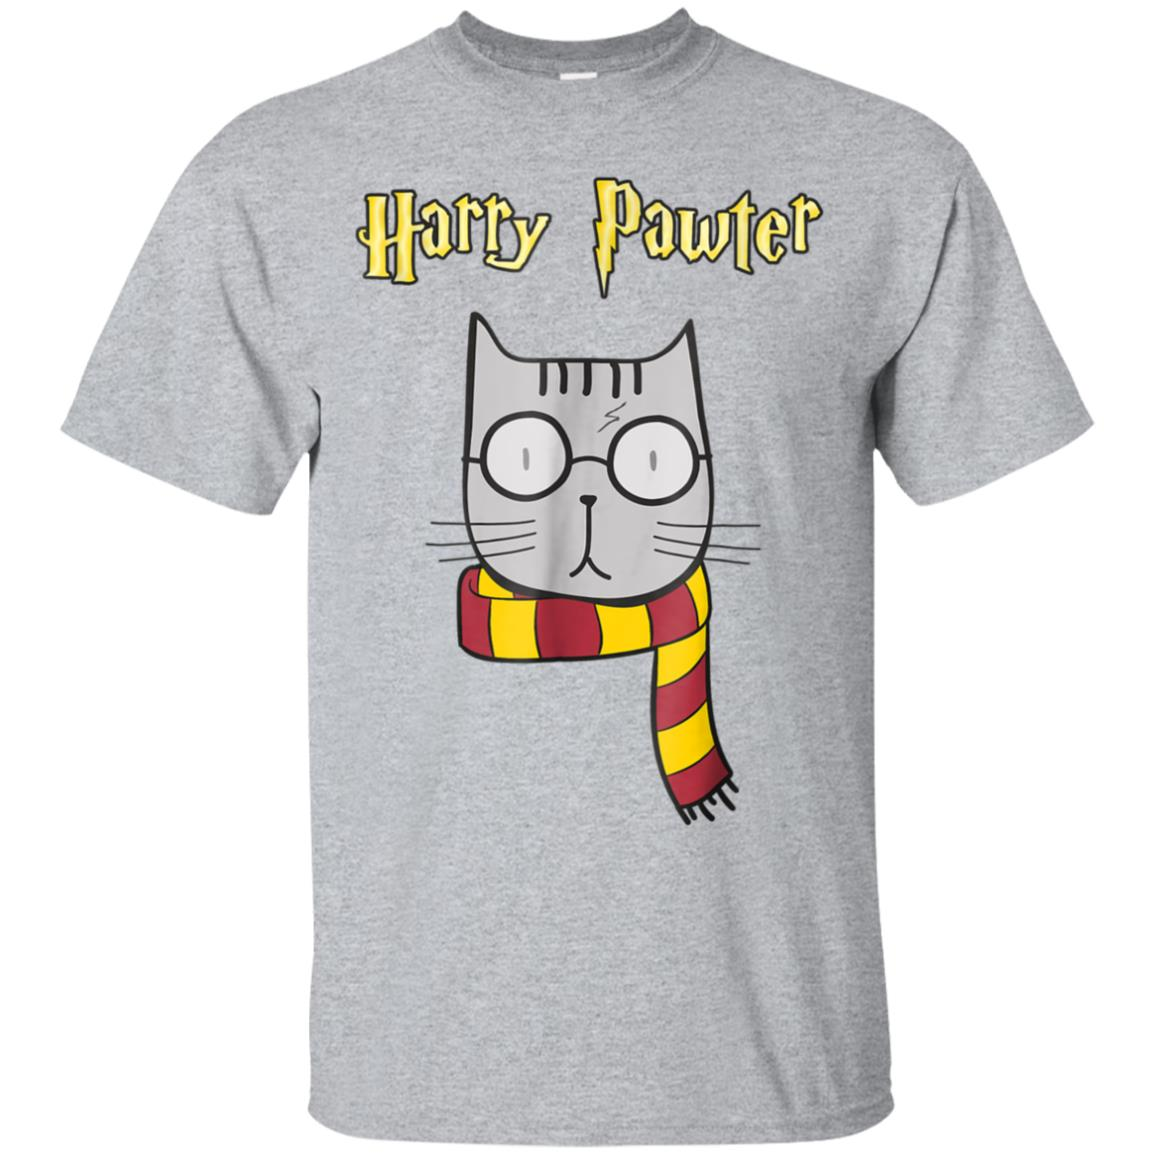 Harry Pawter Funny T-Shirt Cute Magic Cat With Glasses Gift 99promocode